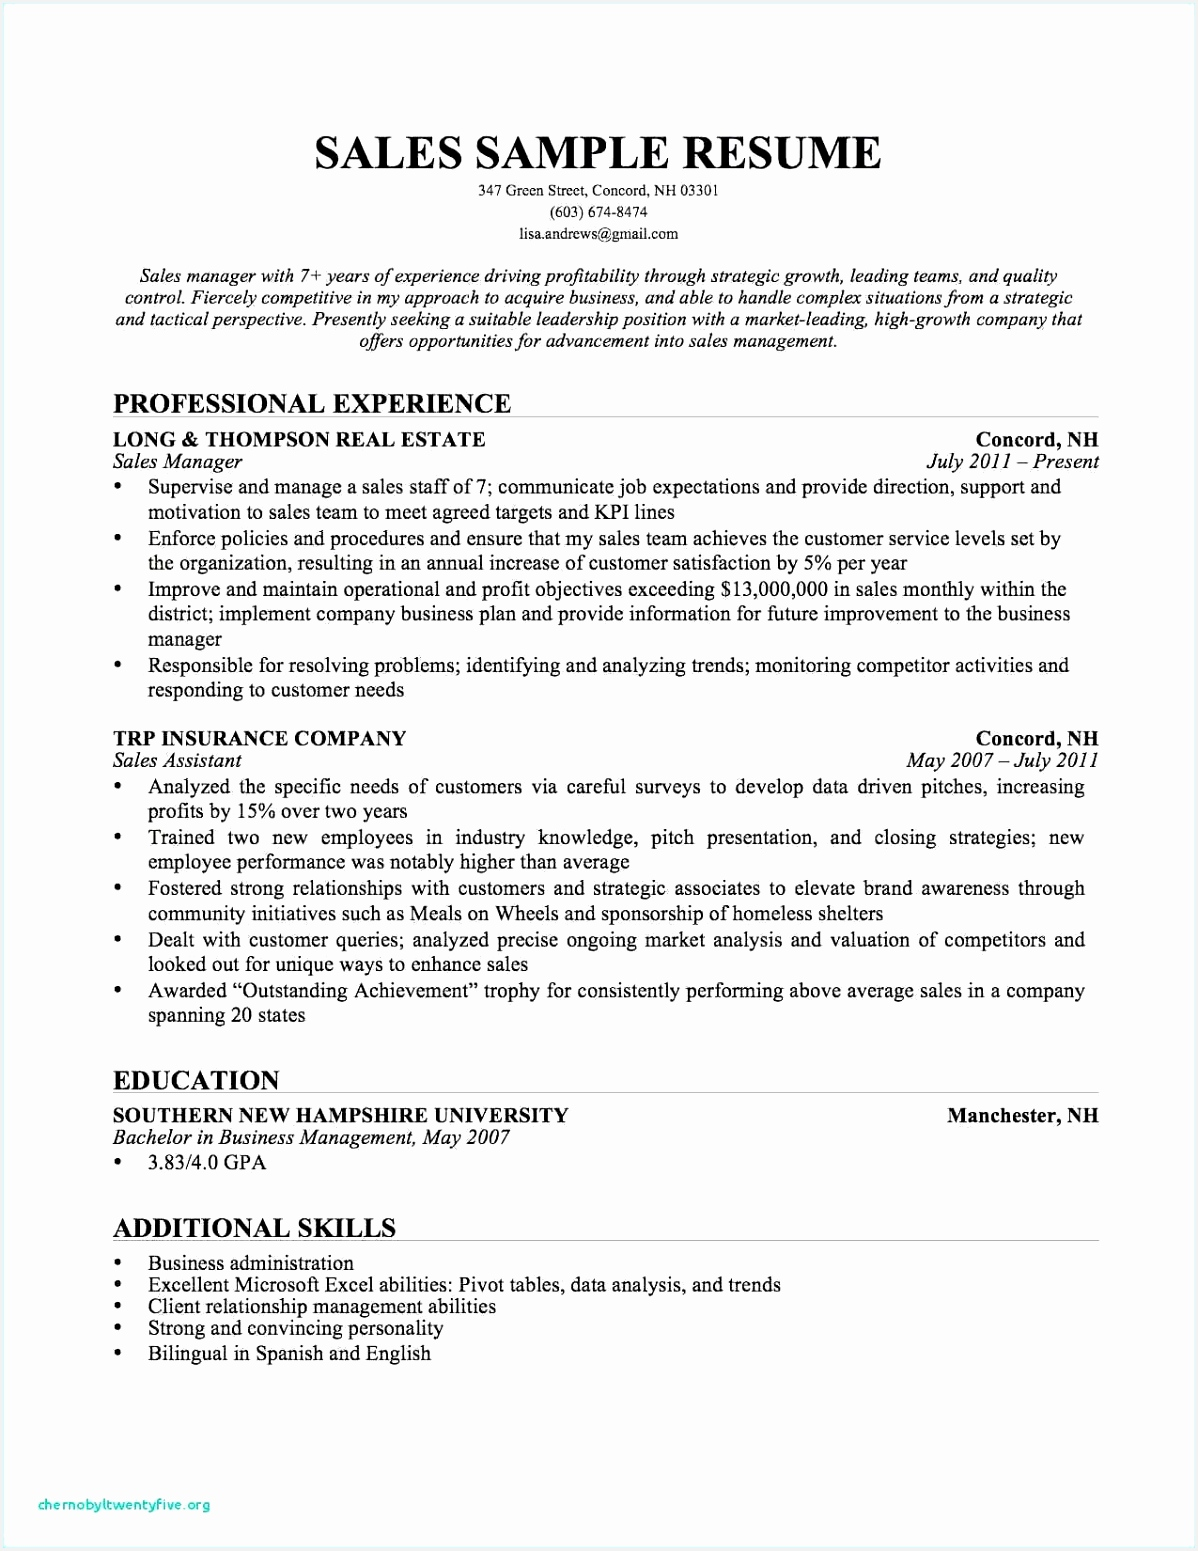 Dance Resume Examples Professional Gmail Resume 5 Resume Profile Sample Awesome Examples 0d 15511198rdrkd